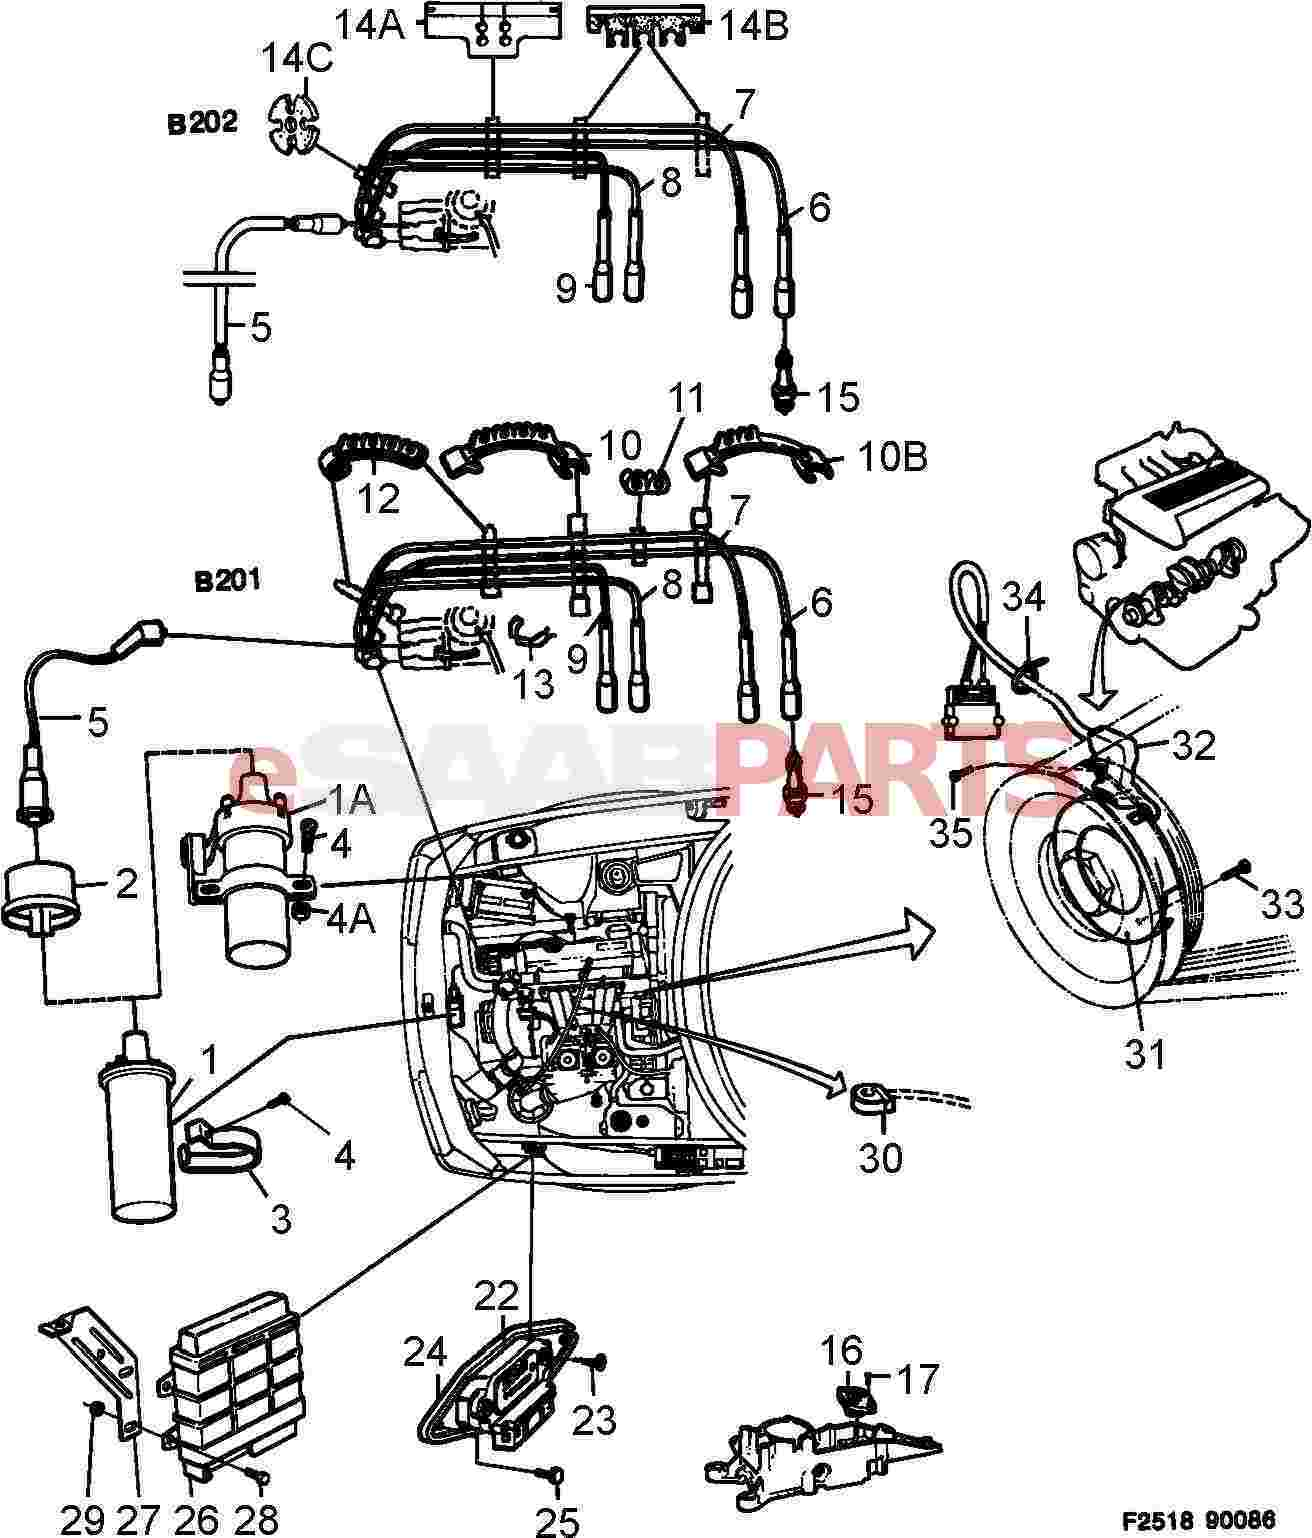 Saab 900 Convertible Wiring Three Wire Diagram Redcat 50cc